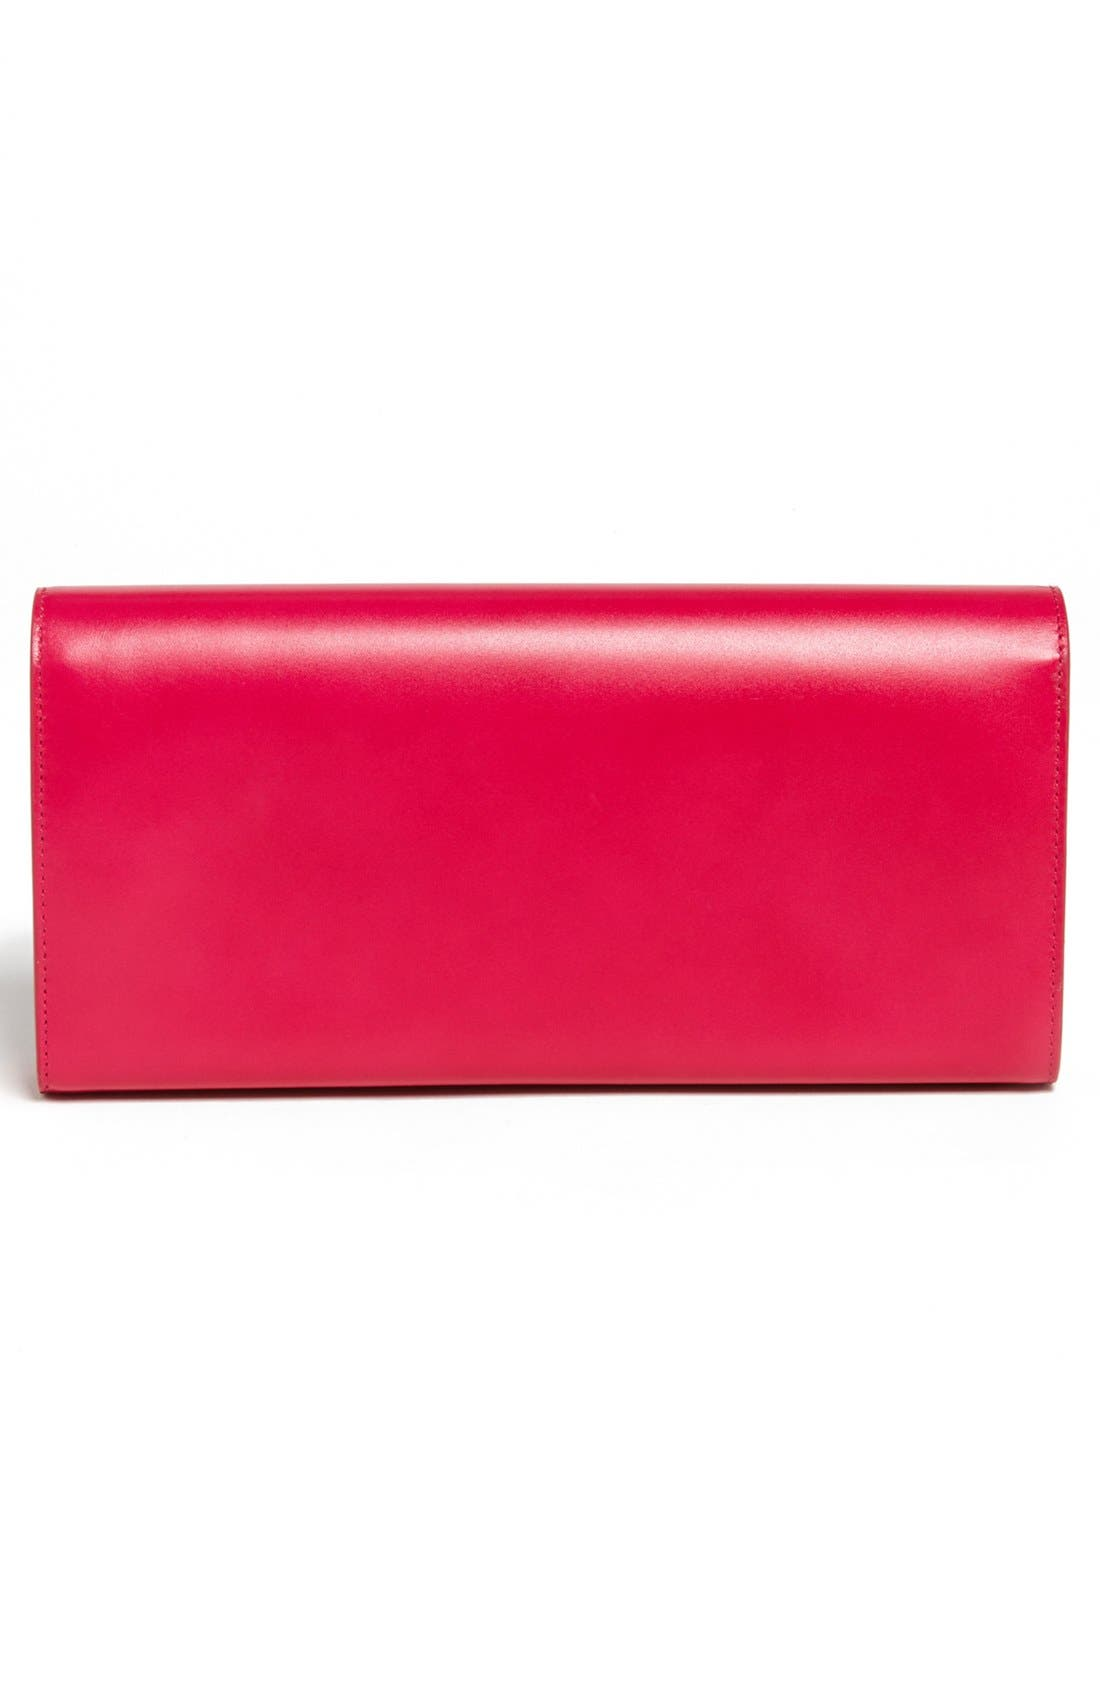 Alternate Image 4  - Saint Laurent 'Cassandre Monet' Leather Clutch